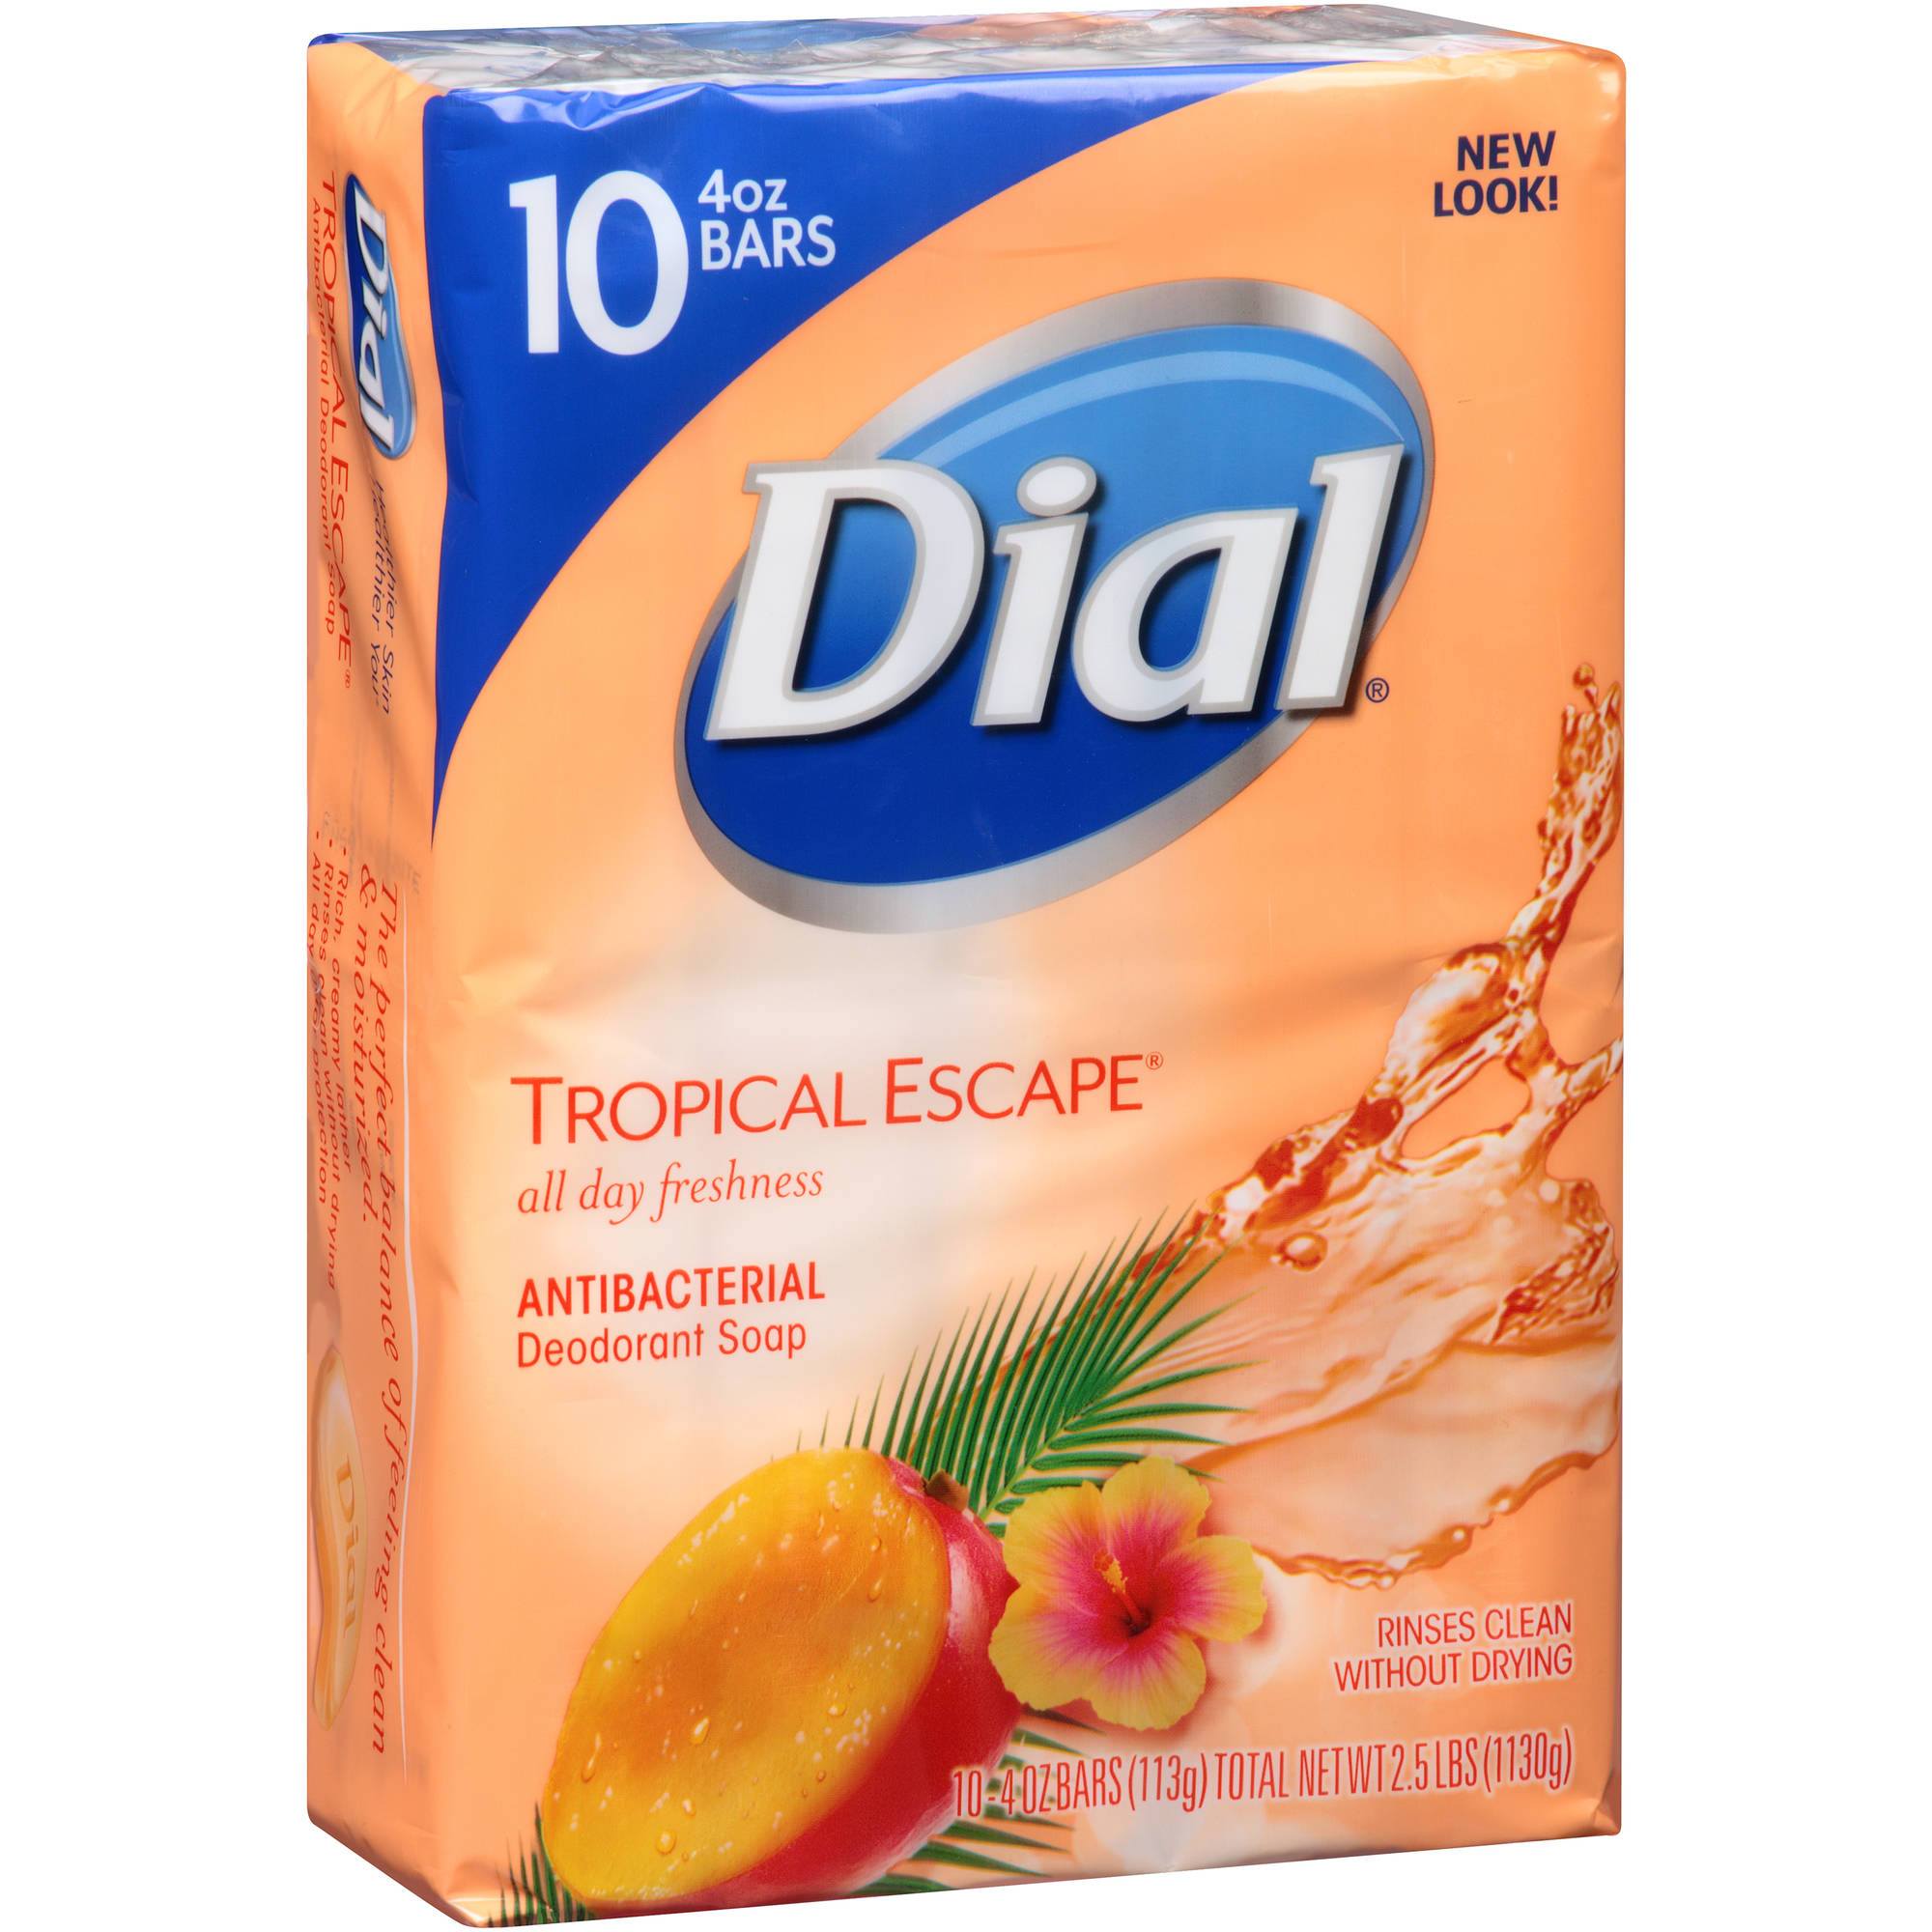 Dial Tropical Escape Antibacterial Deodorant Bar Soap, 4 oz, 10 count